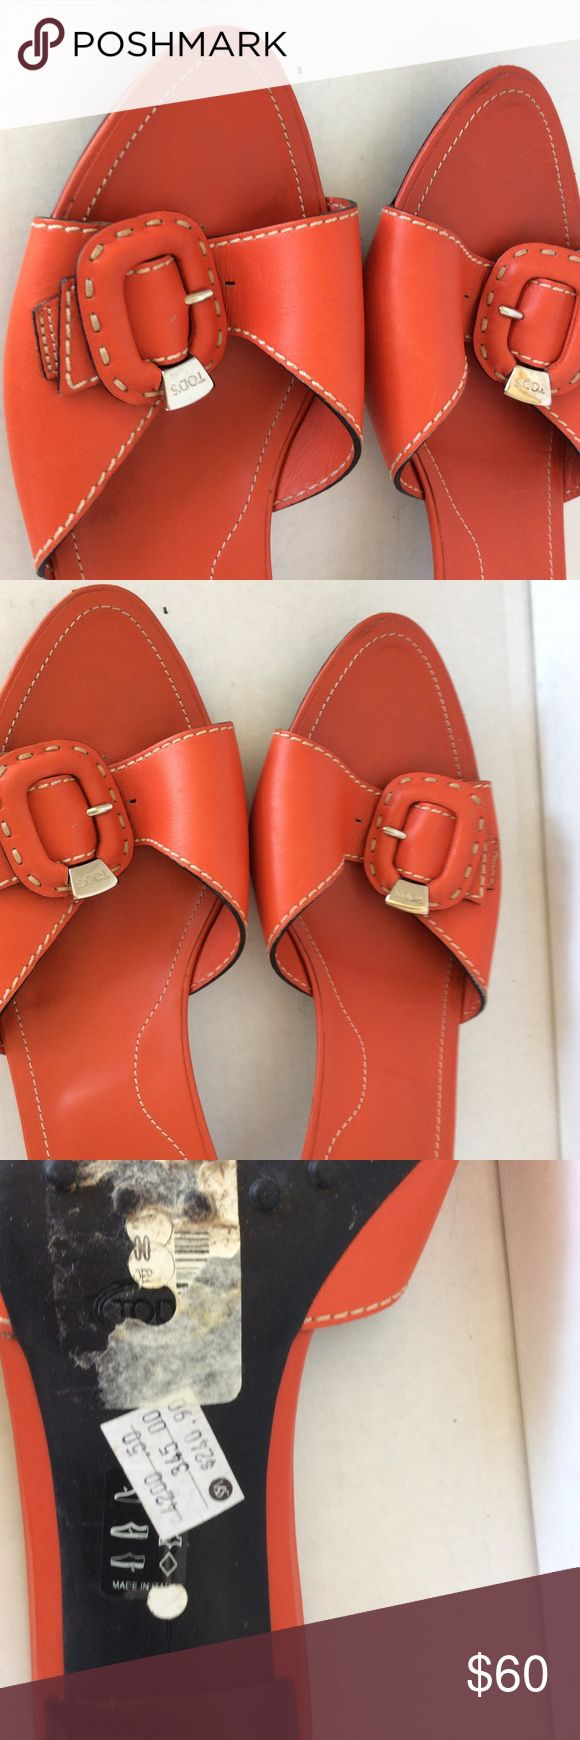 Tod's orange sandal size 10.5 Made in Italy Tod's orange sandal with tonal stitching metal hardware . Made in Italy. Pristine condition Tod's Shoes Sandals